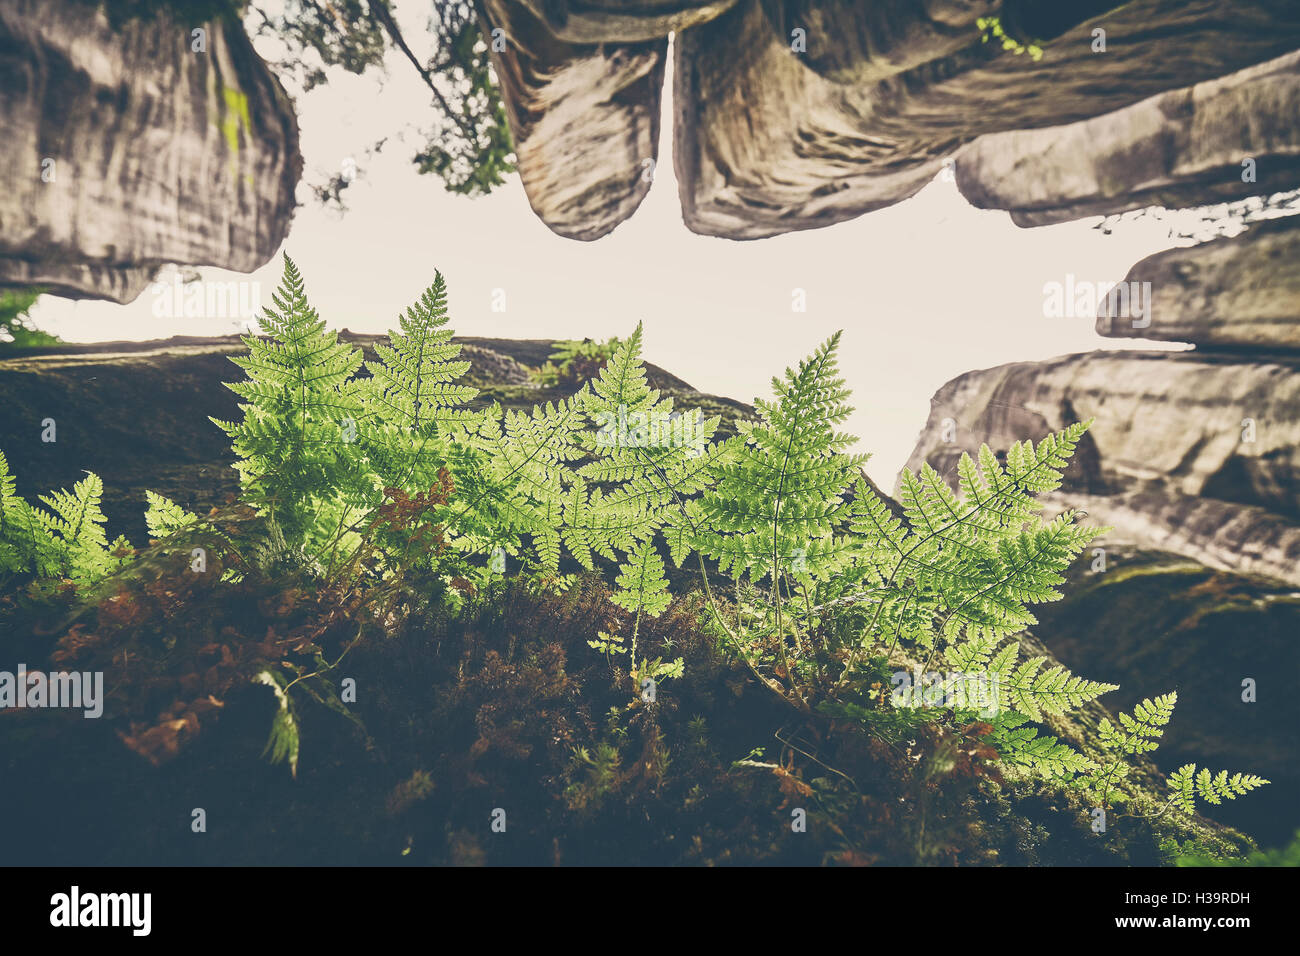 Vintage toned fern leaves on rock, looking up the mountains, selective focus. - Stock Image